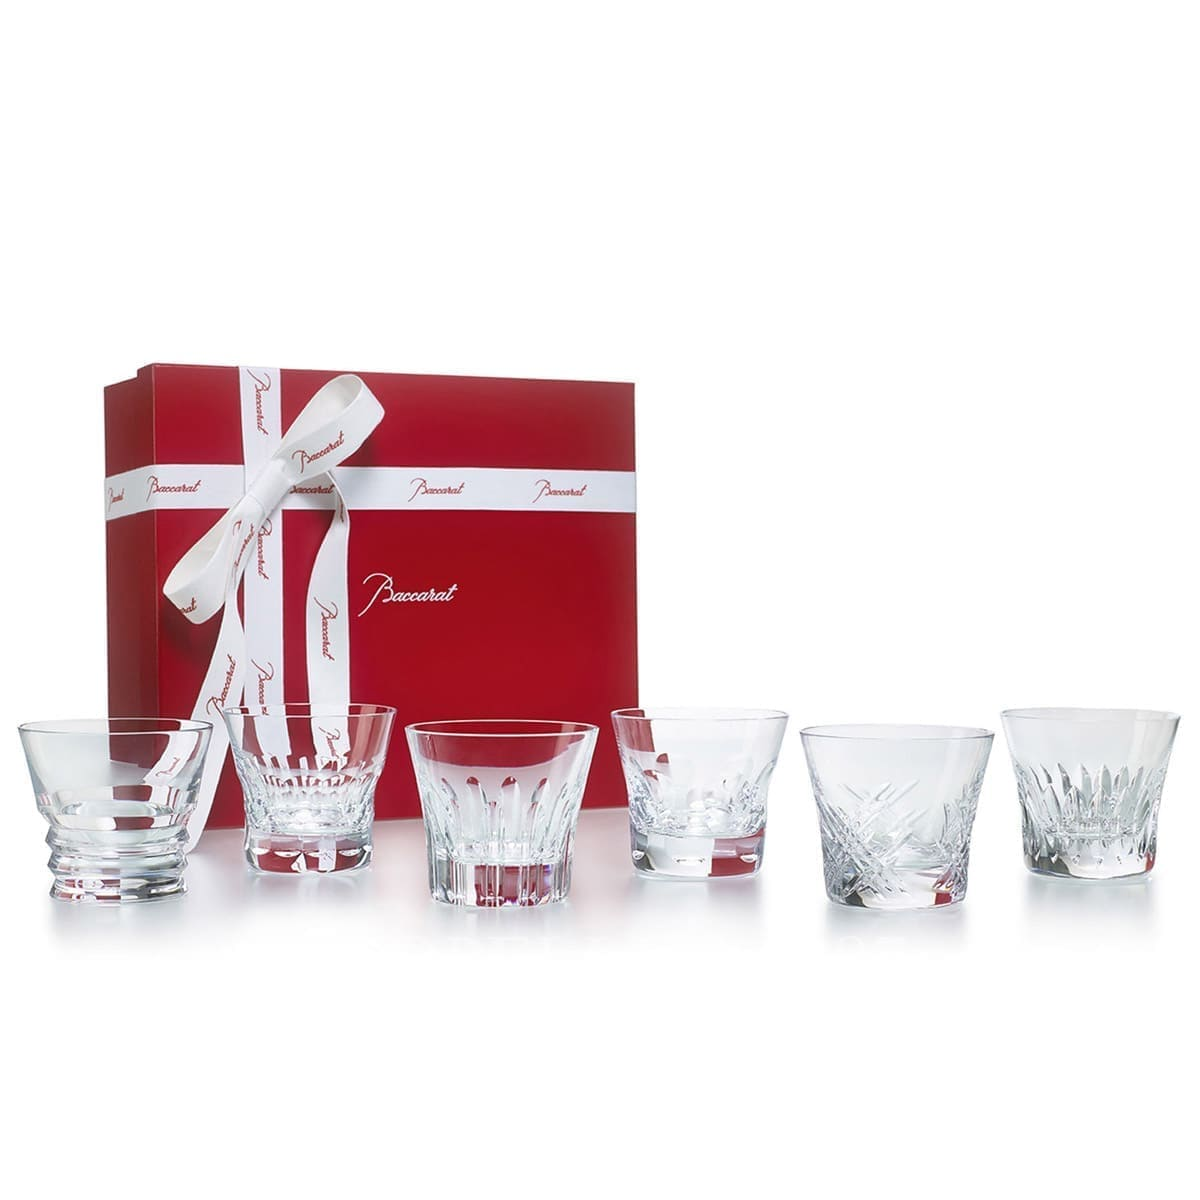 baccarat crystal french design tumbler set collection